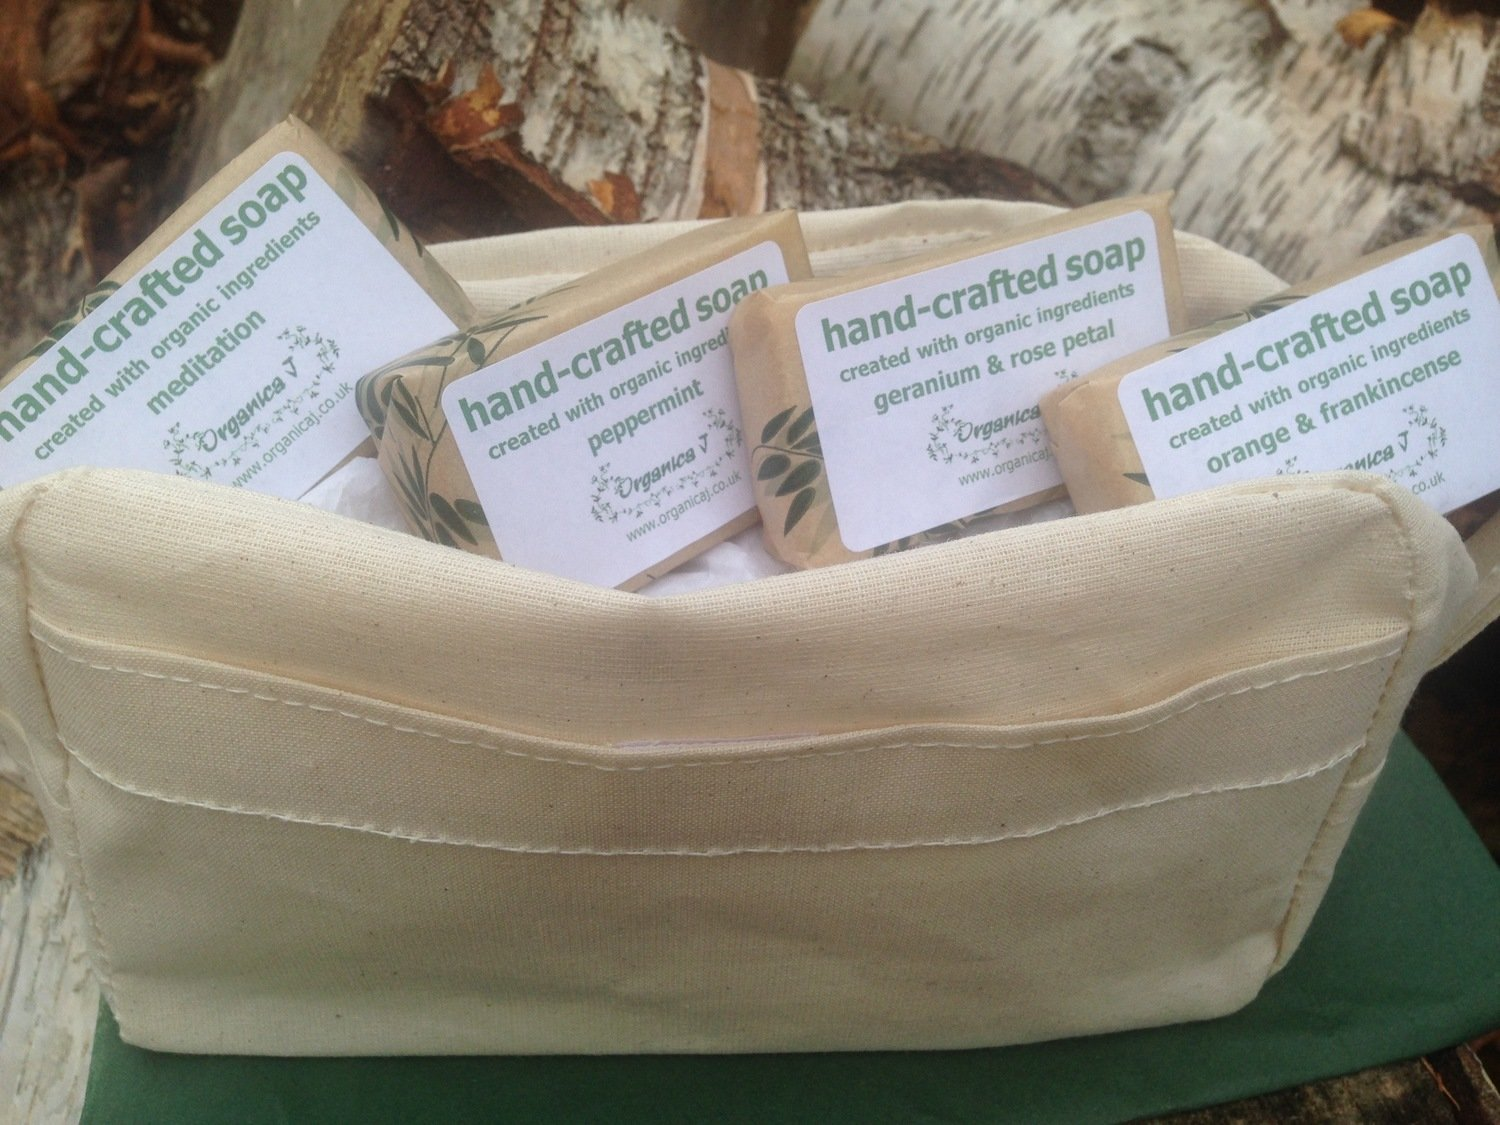 Organic Soaps in A Natural Cotton Toiletry Bag